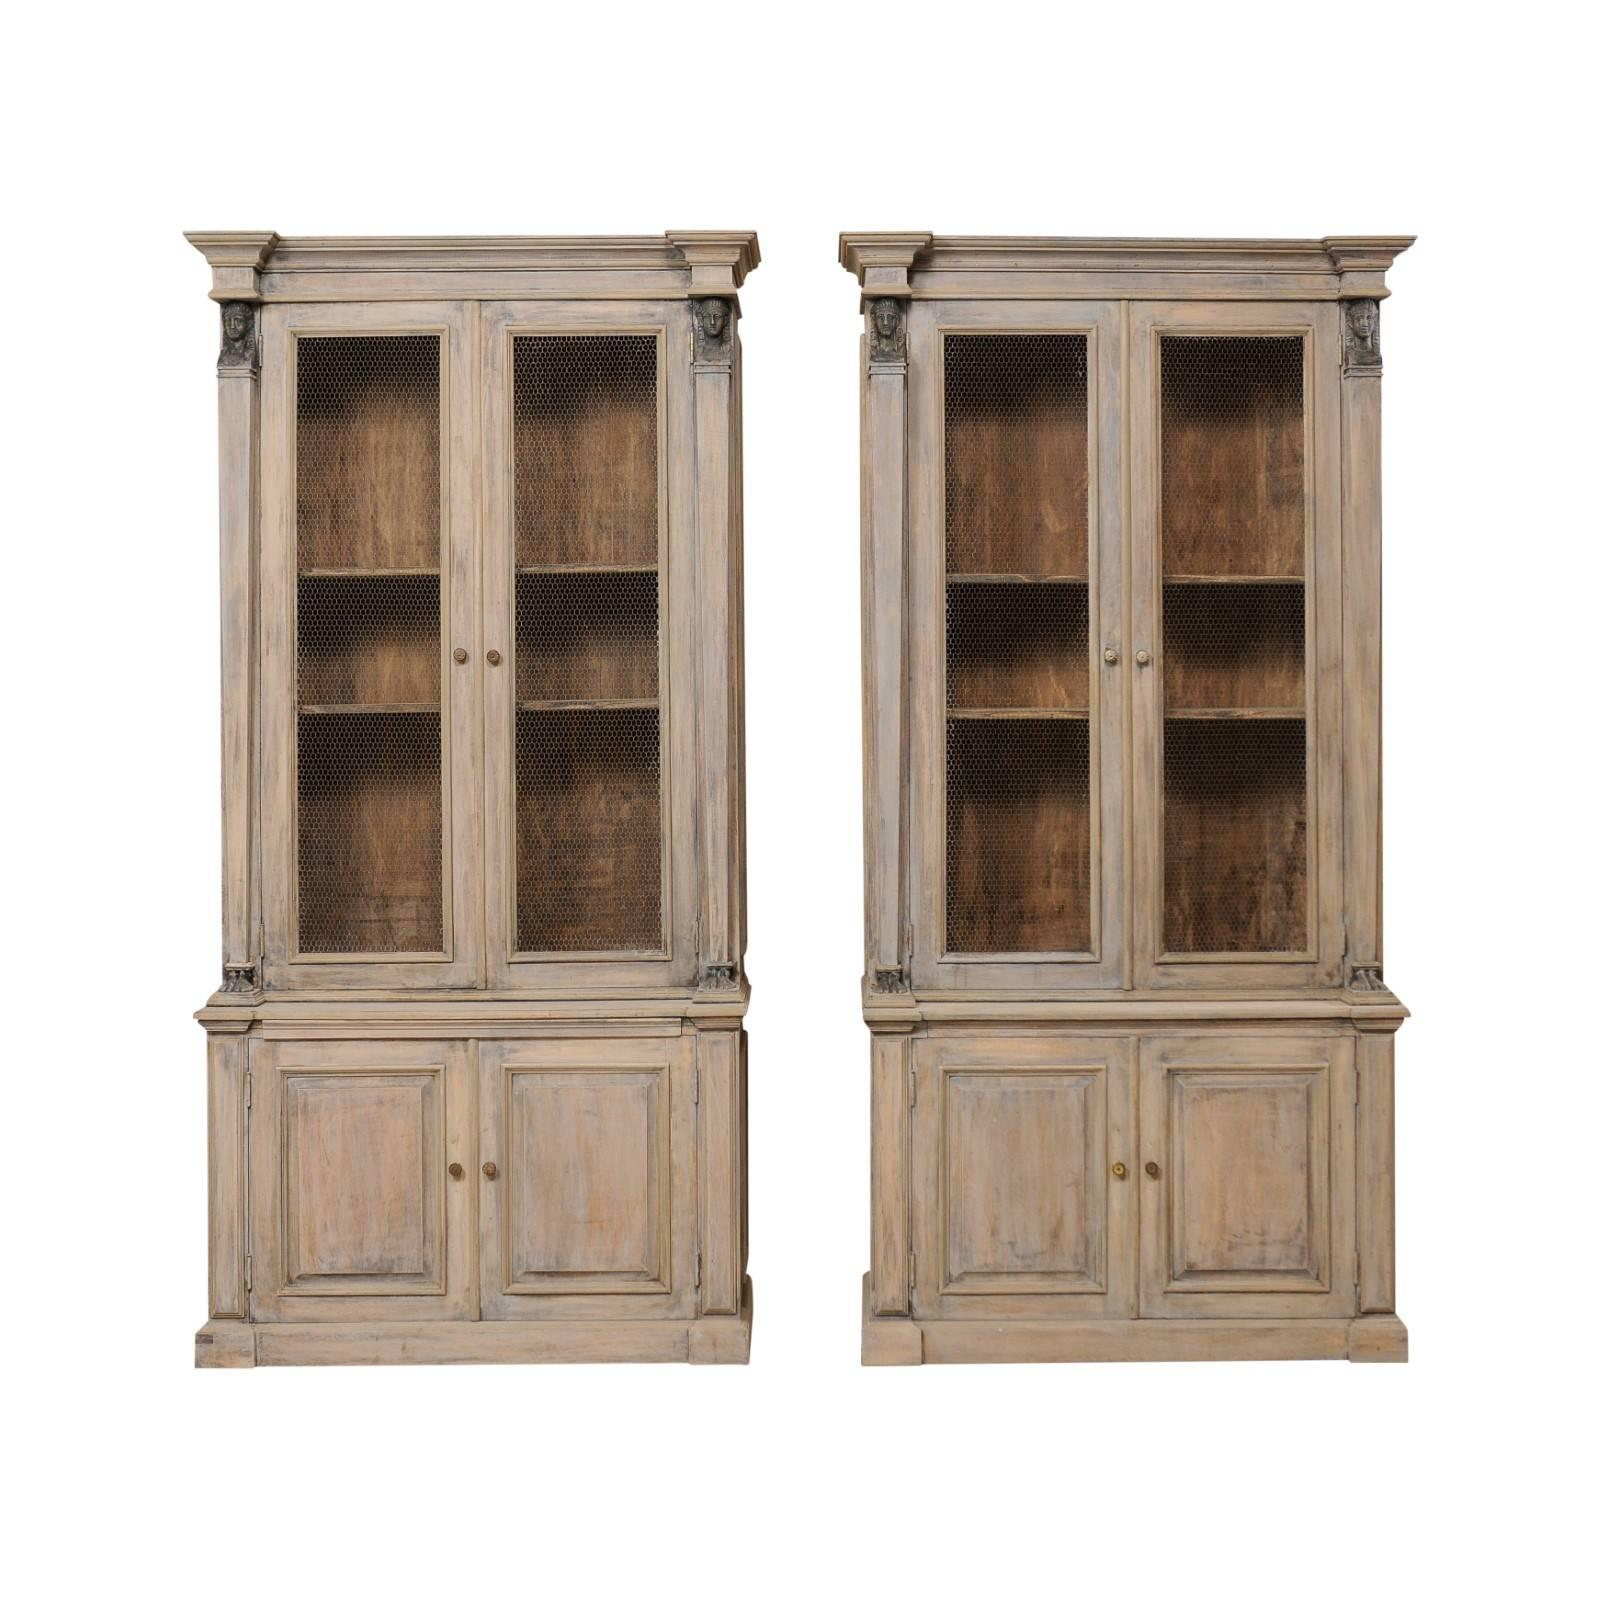 Incroyable Pair Of French Mid 20th Century Tall Painted Wood Neoclassical Style  Cabinets For Sale